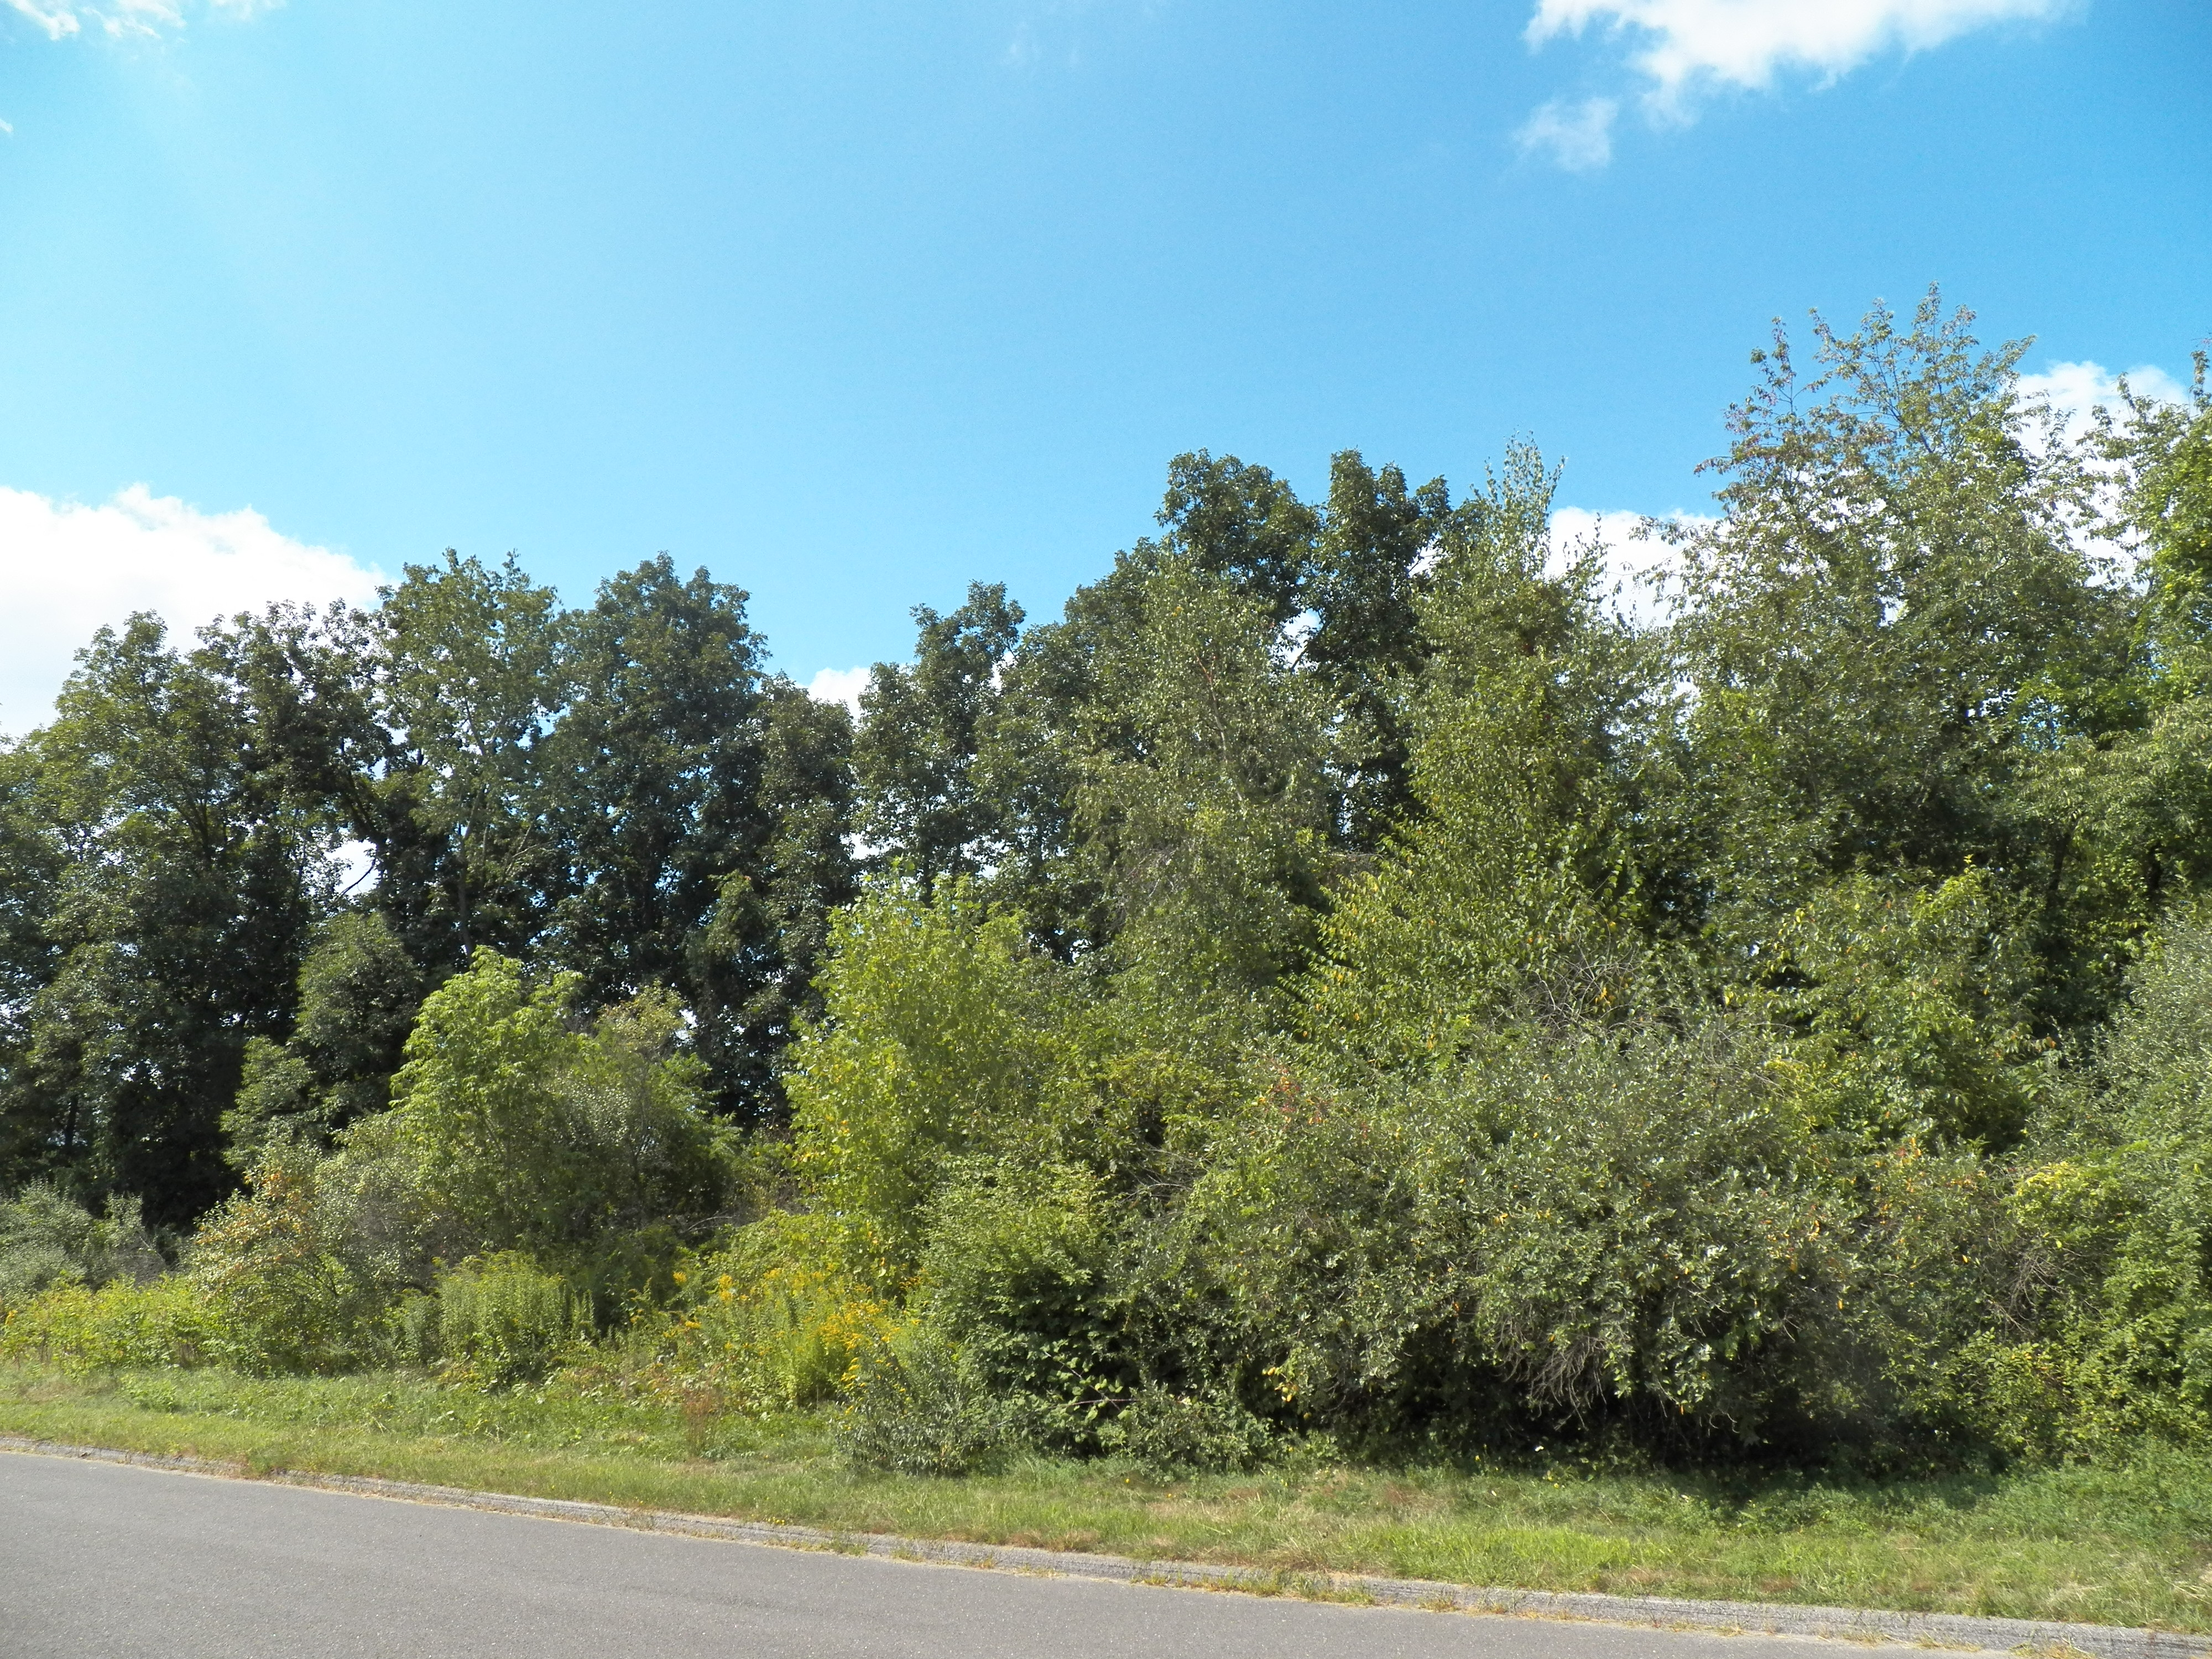 Land for Sale at Quiet Cul De Sac 25 Stone Oak Dr New Milford, Connecticut 06776 United States